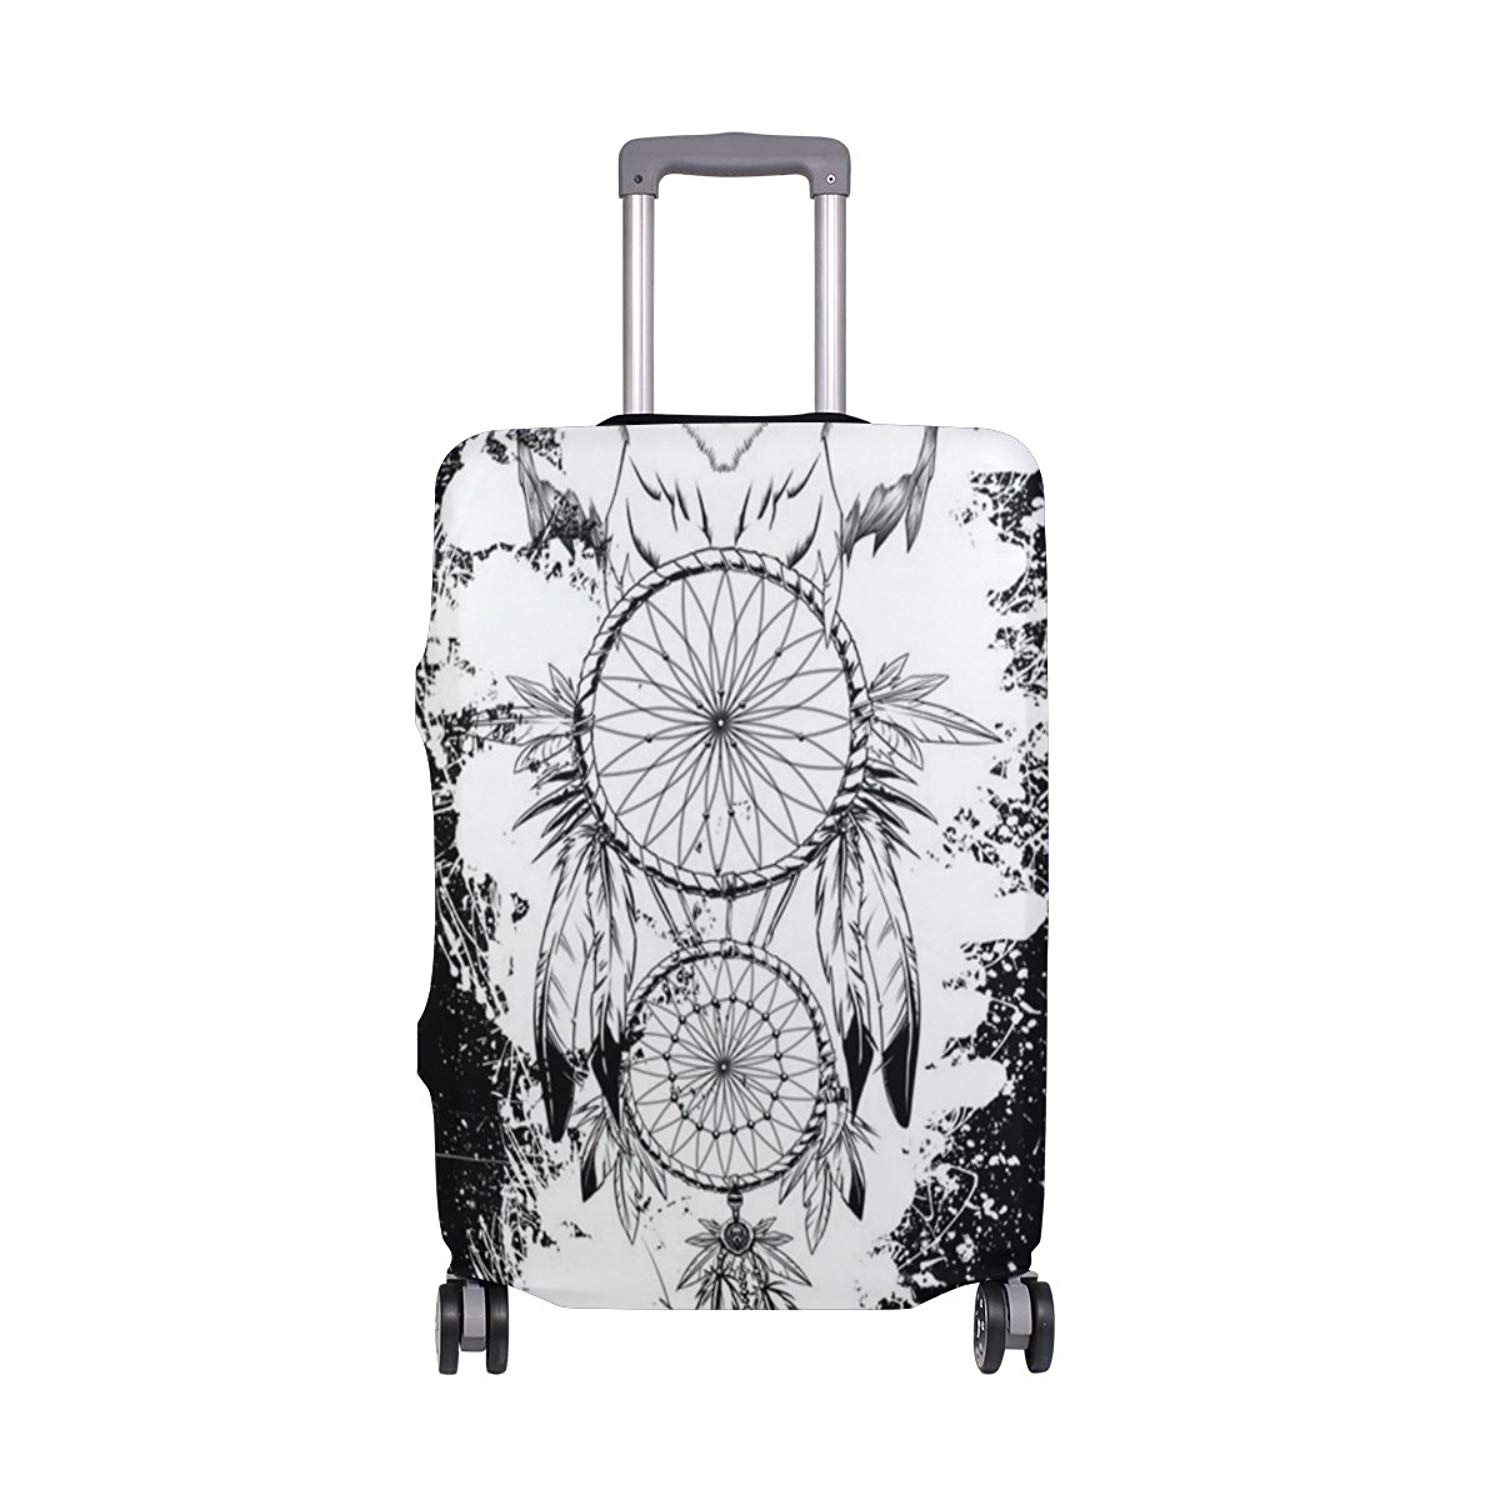 FOLPPLY Colorful Ethnic Africa Luggage Cover Baggage Suitcase Travel Protector Fit for 18-32 Inch